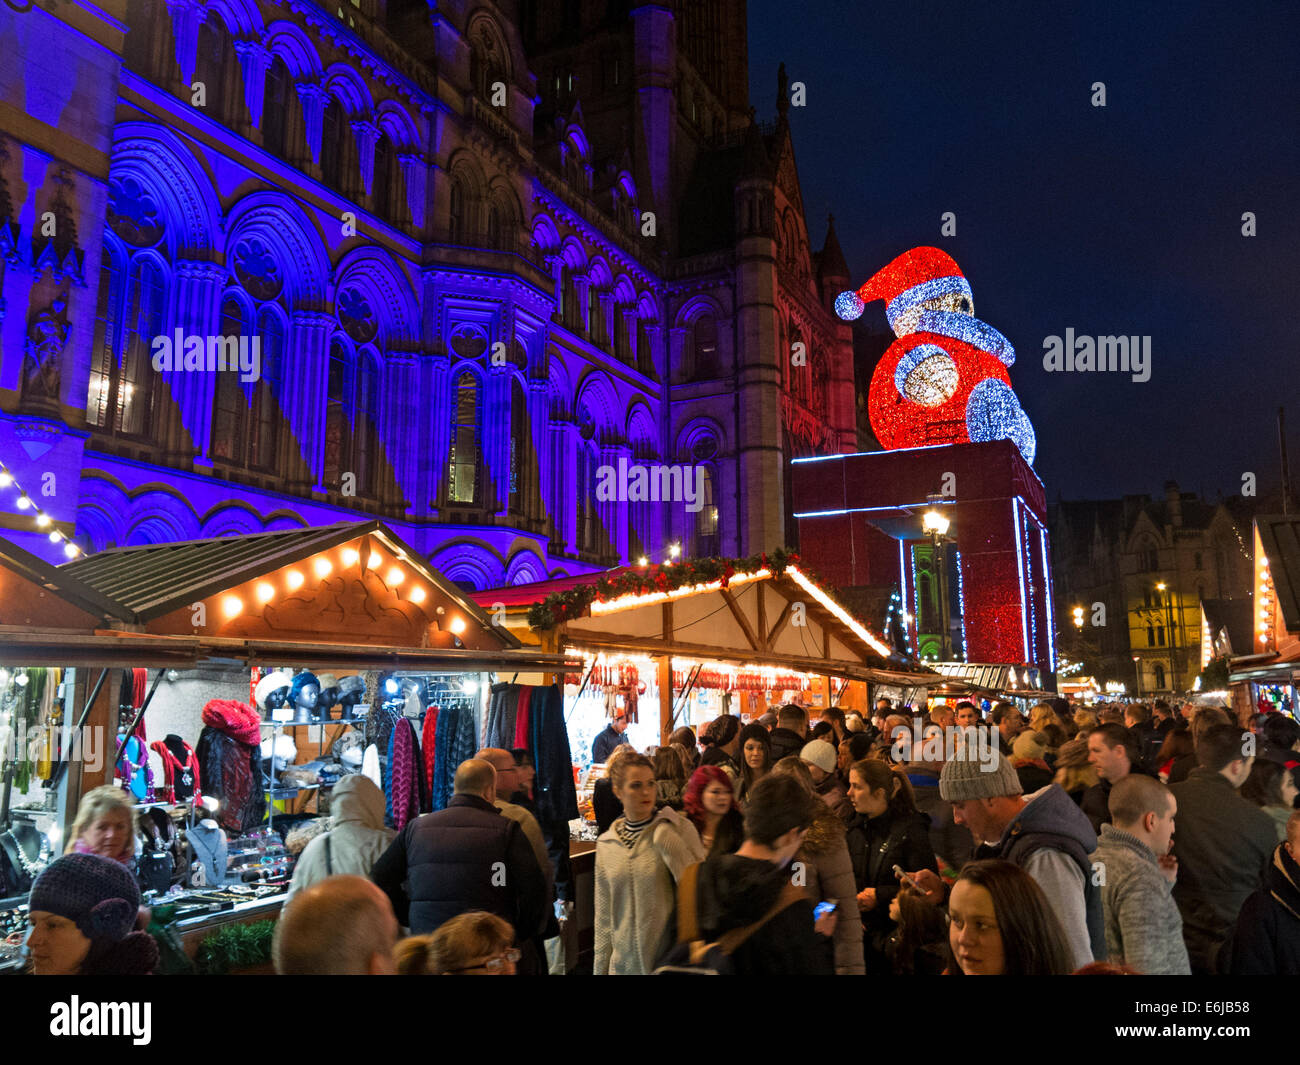 Xmas,Manc,mancunian,night,evening,November,Dec,Nov,townhall,sq,GB,British,Great,Britain,English,traditional,tradition,german,germany,markets,stalls,European,Santa,on,town,hall,Albert,Square,England,UK,lit,up,public,building,city,centre,shopping,shops,present,people,crowd,at,family,sausages,wurst,Gotonysmith,Buy Pictures of,Buy Images Of